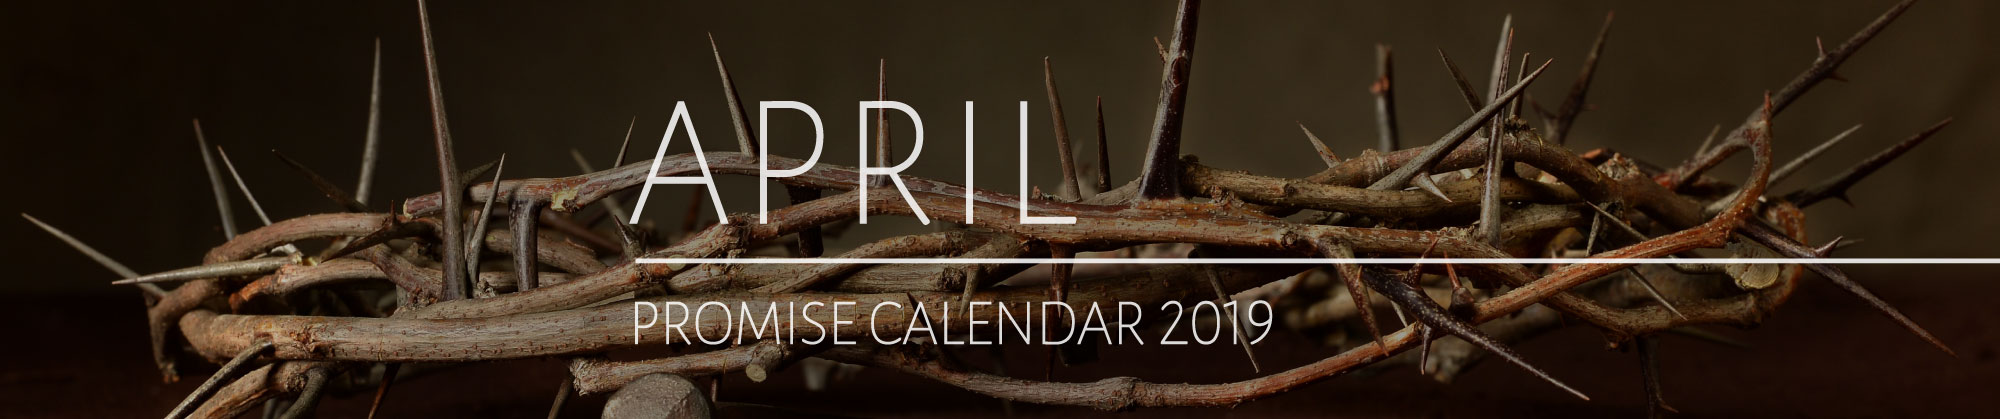 April 2017 Promise Calendar Header